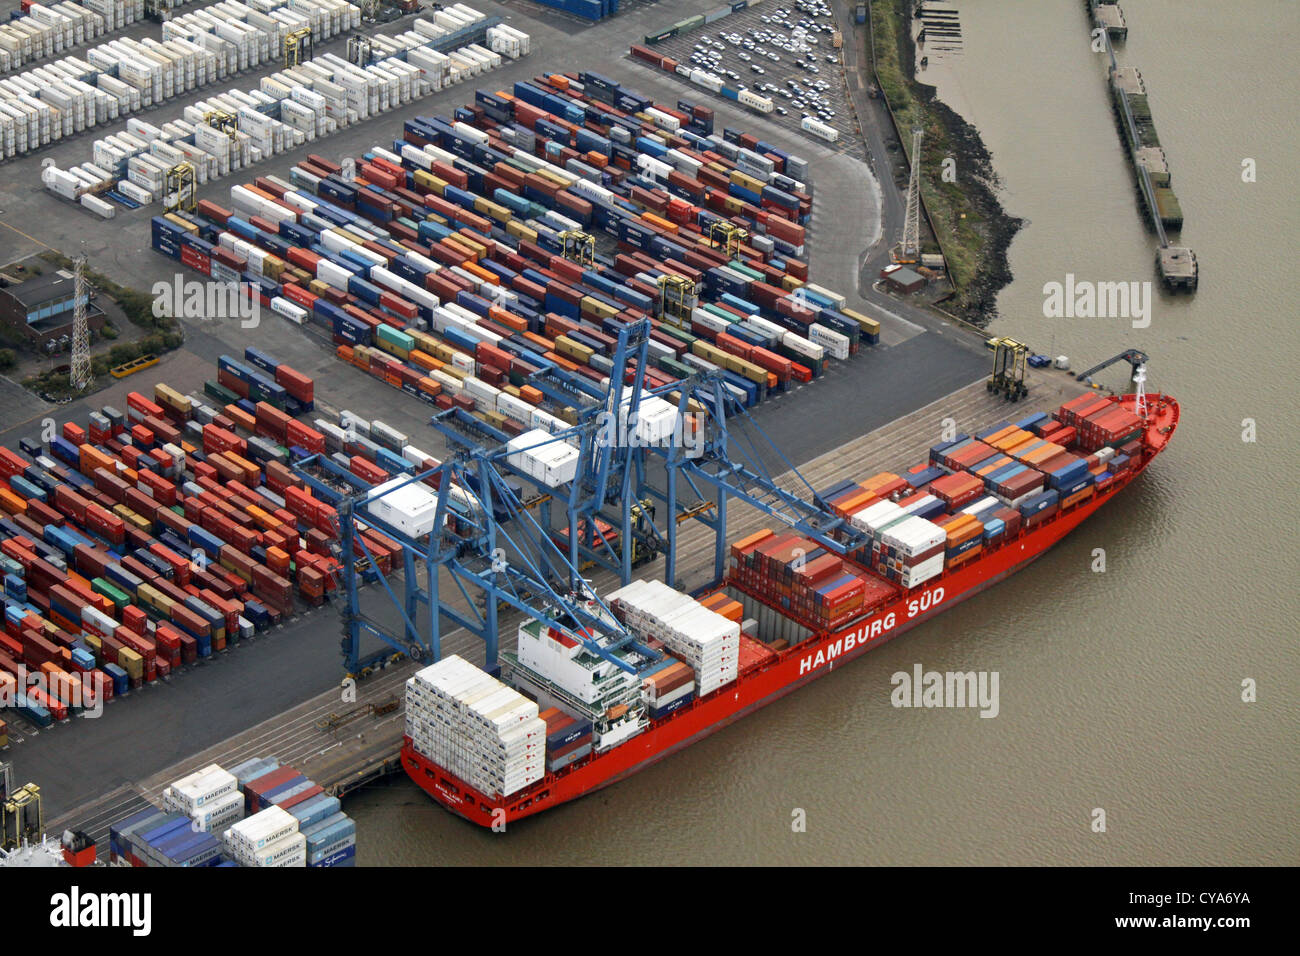 aerial view of a container ship The Hamburg Sud at Tilbury Docks, Essex, UK - Stock Image